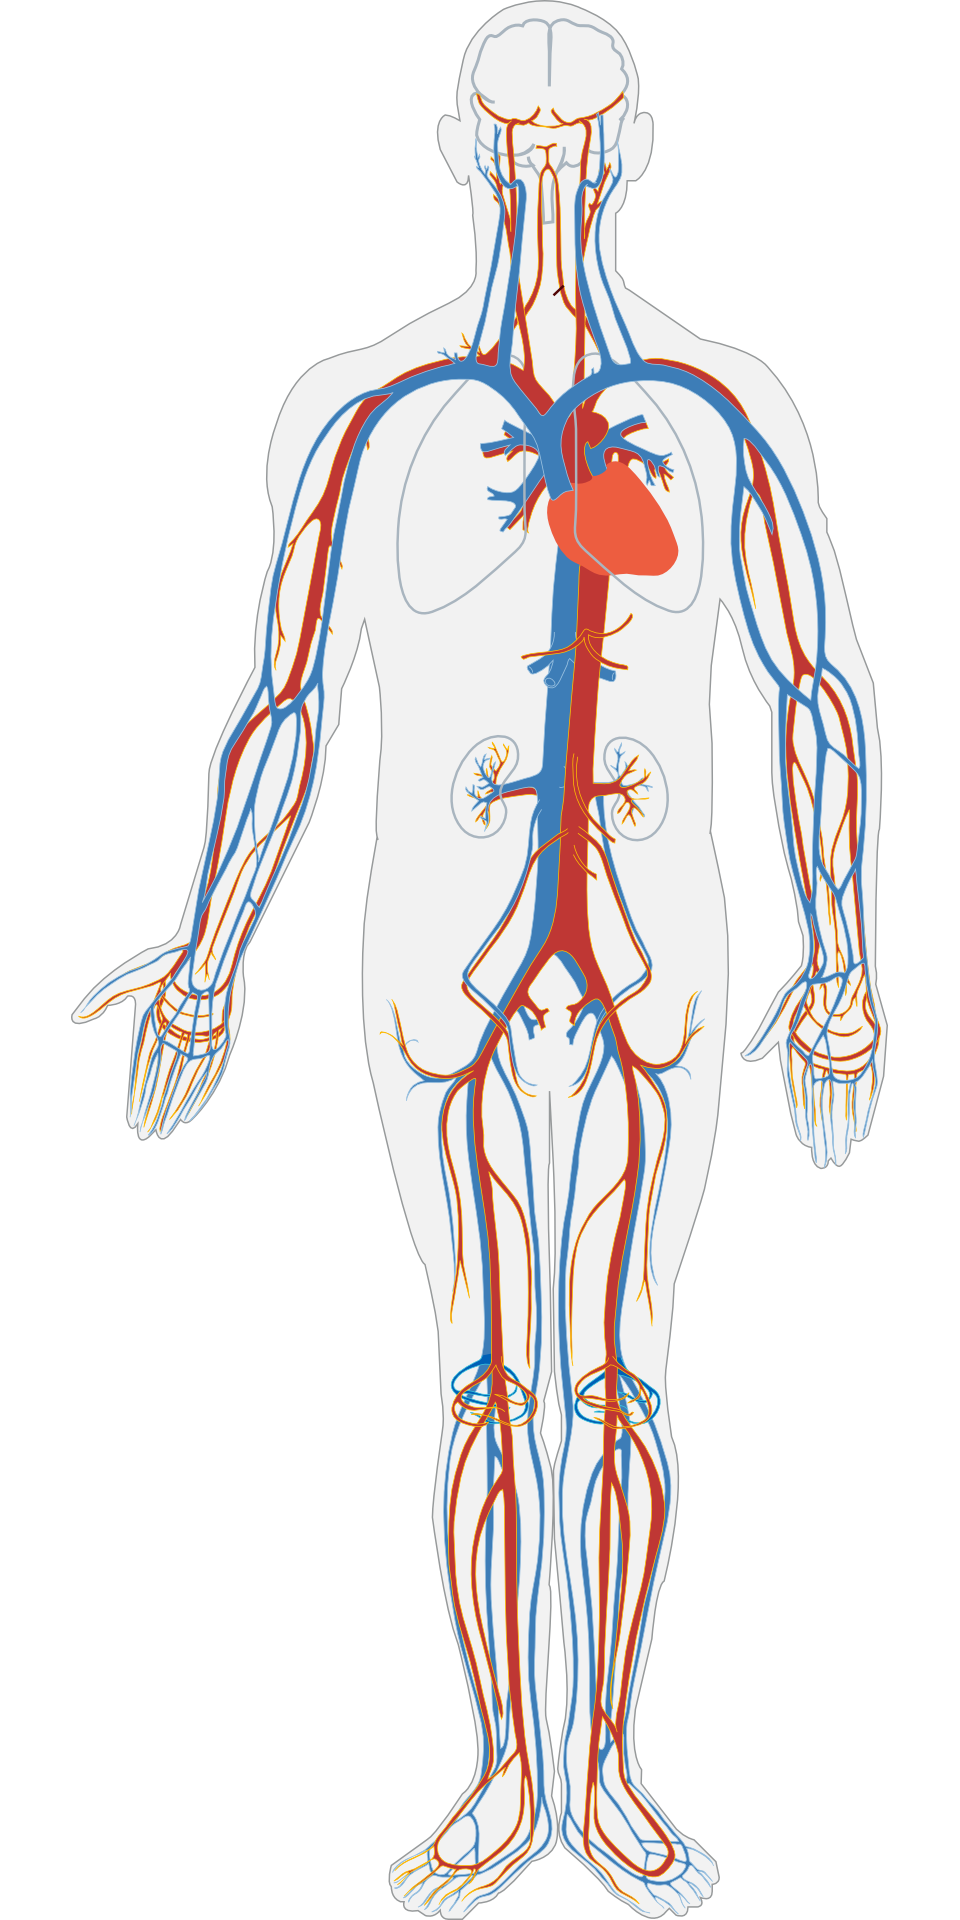 Peripheral Arterial Disease Detection, Awareness, and Treatment in Primary Care